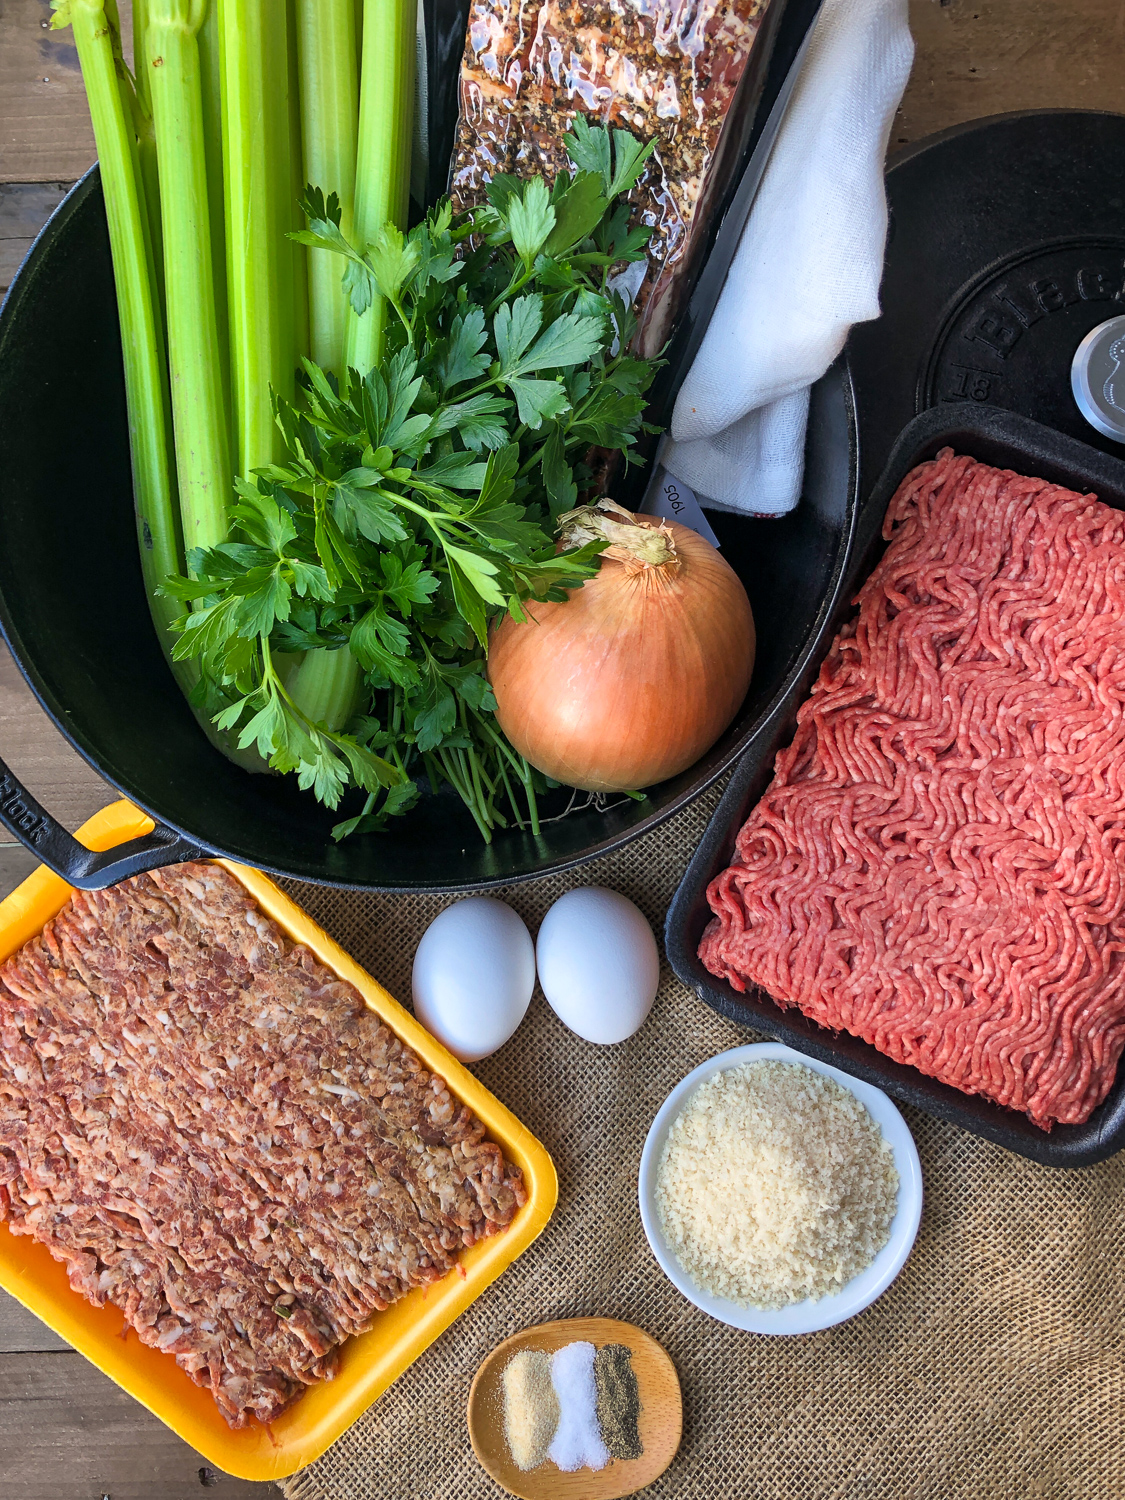 Ingredients to make the meatloaf: ground Italian sausage, ground beef, eggs, panko, onion, celery, peppered bacon, fresh parsley, seasonings, and a dutch oven.